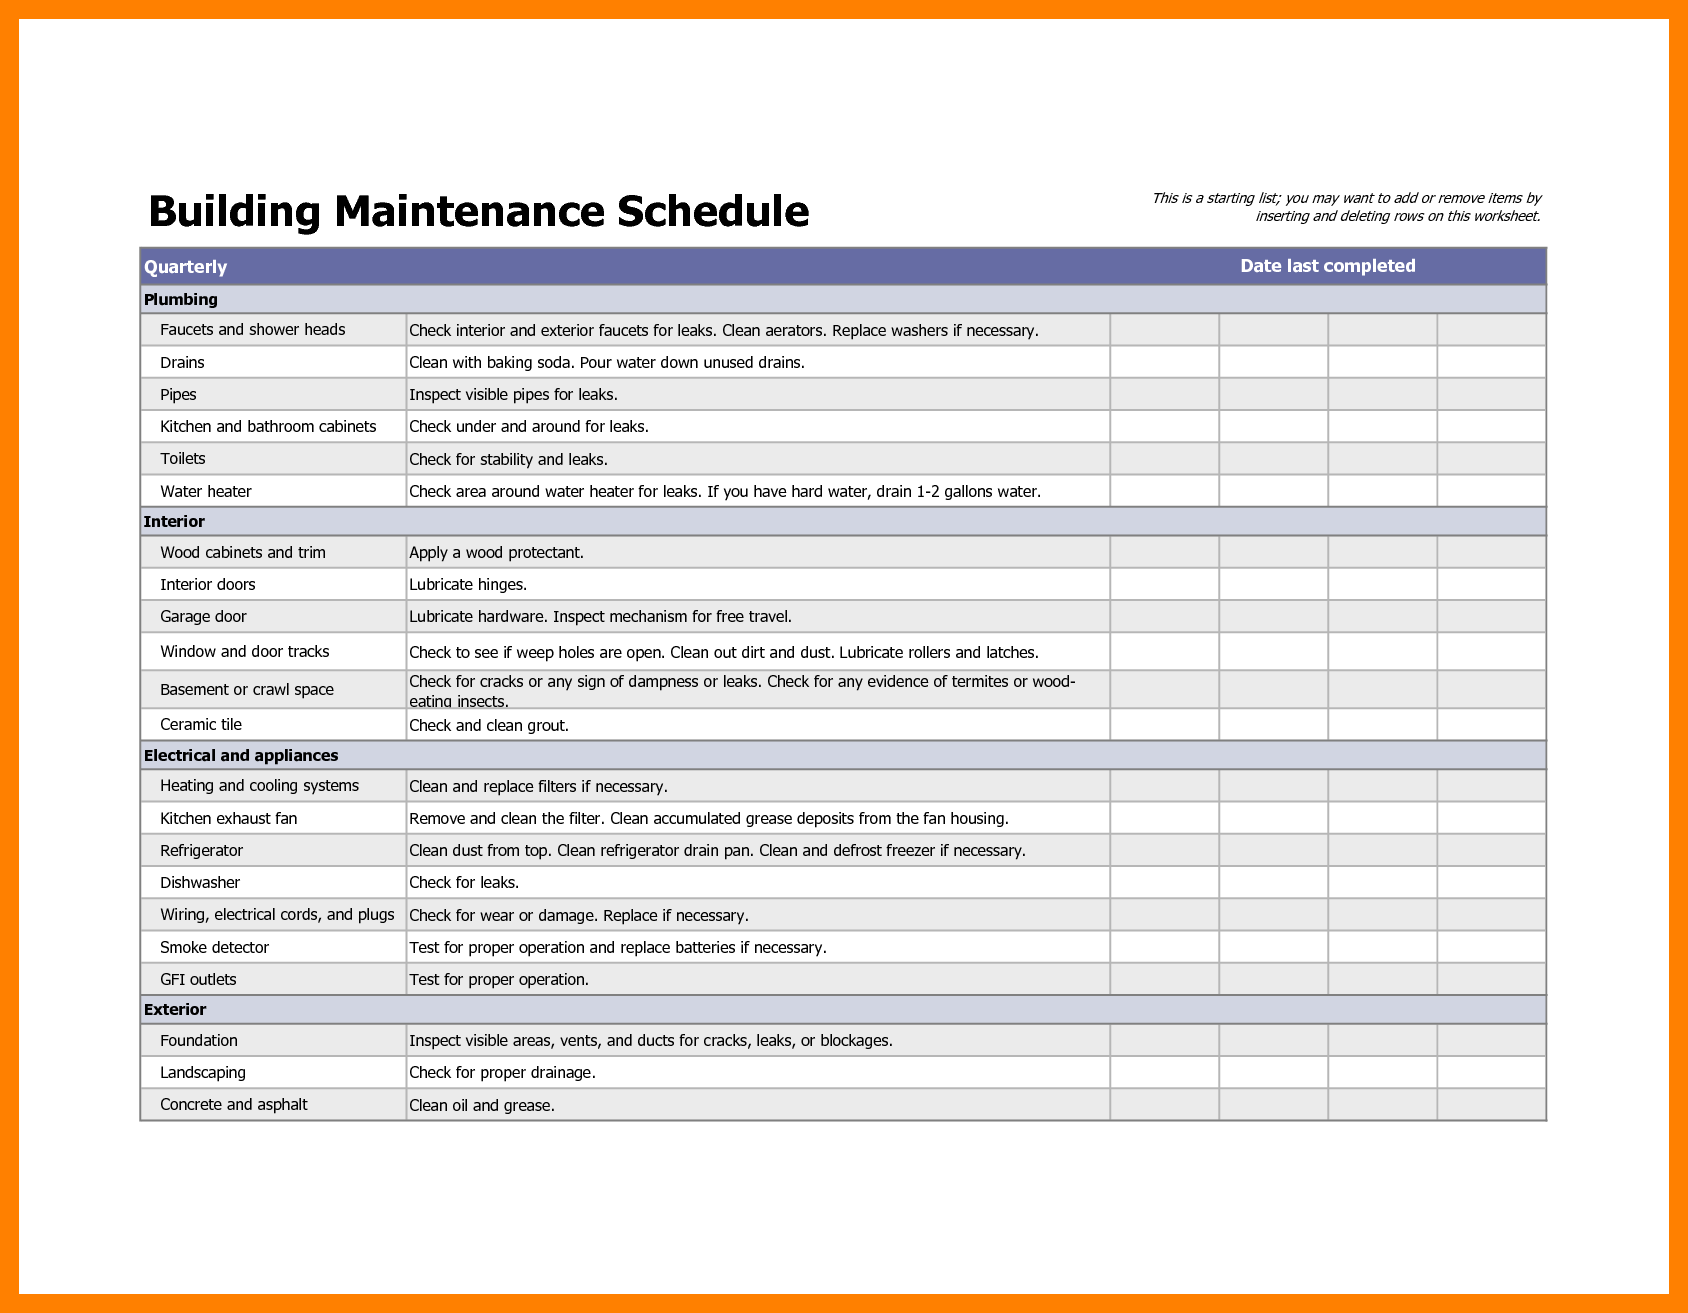 Building maintenance checklist template infinite concept so